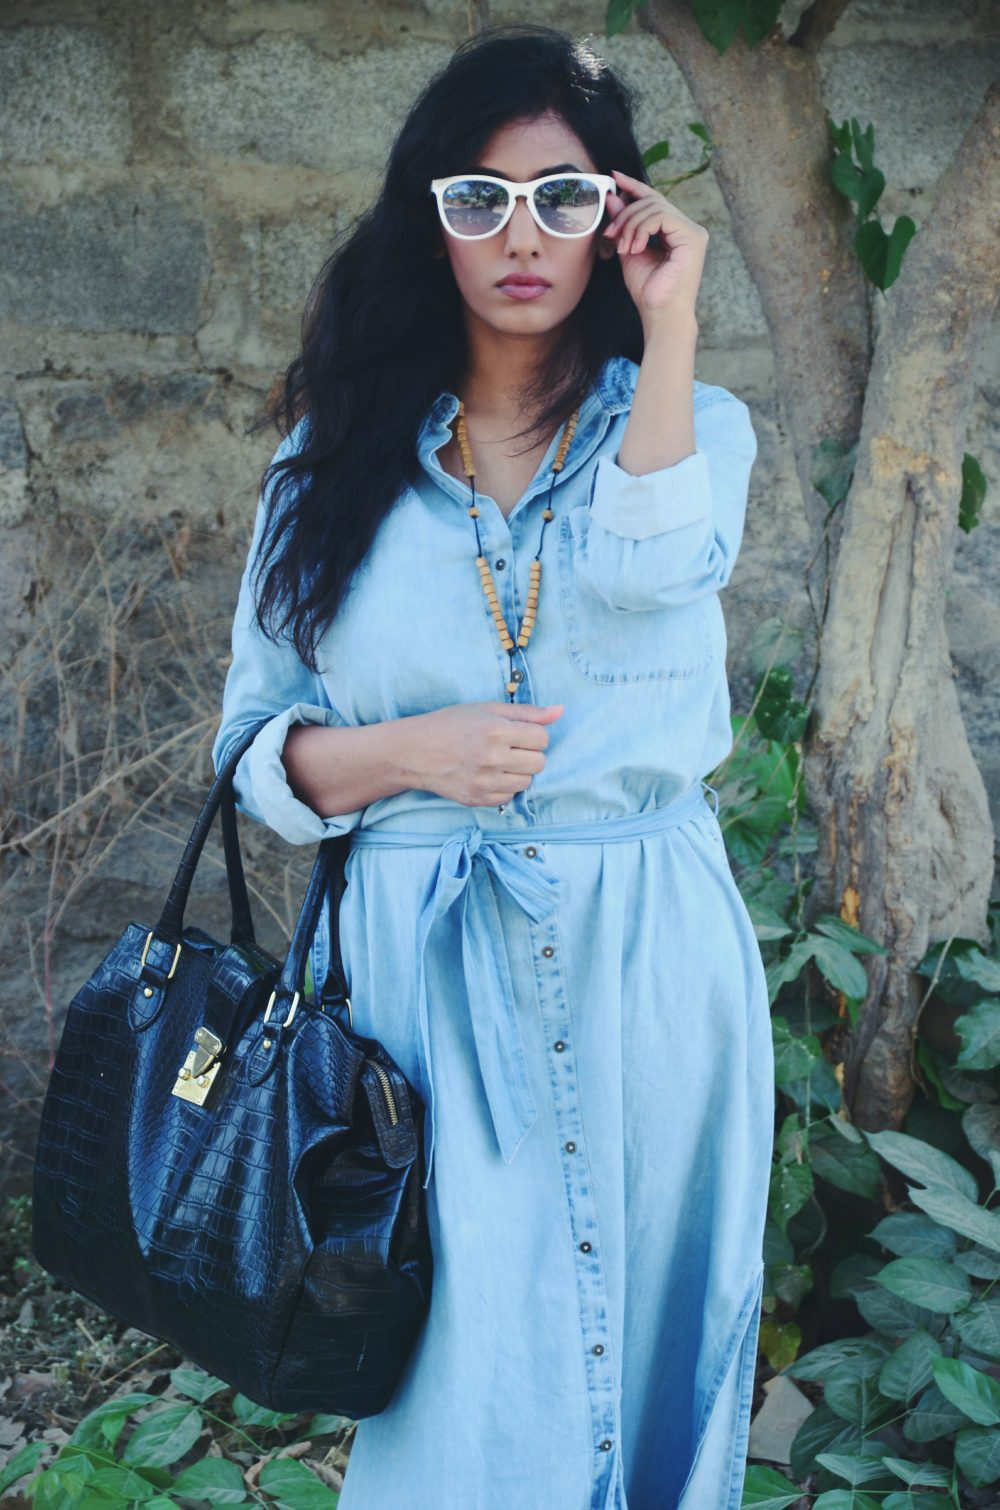 Lookbook ; Denim Maxi ; Dress ; Blue ; Monochrome ; Blue ; Outfit ; Love ; Bohemian ; Tan ; Gladiators ; Necklace ; fashion photography ; dusk ; editorial ; nude makeup ; strong ; Dark ; summer fashion ; summer outfit ; spring ; summer 17 boho look ; Naznin ; Naznin Suhaer ; dusky; model ; indian blogger ; hyderabad fashion bloggers ; hyderabad bloggers ; hyderabad fashion blogger ; I Dress for the Applause ;